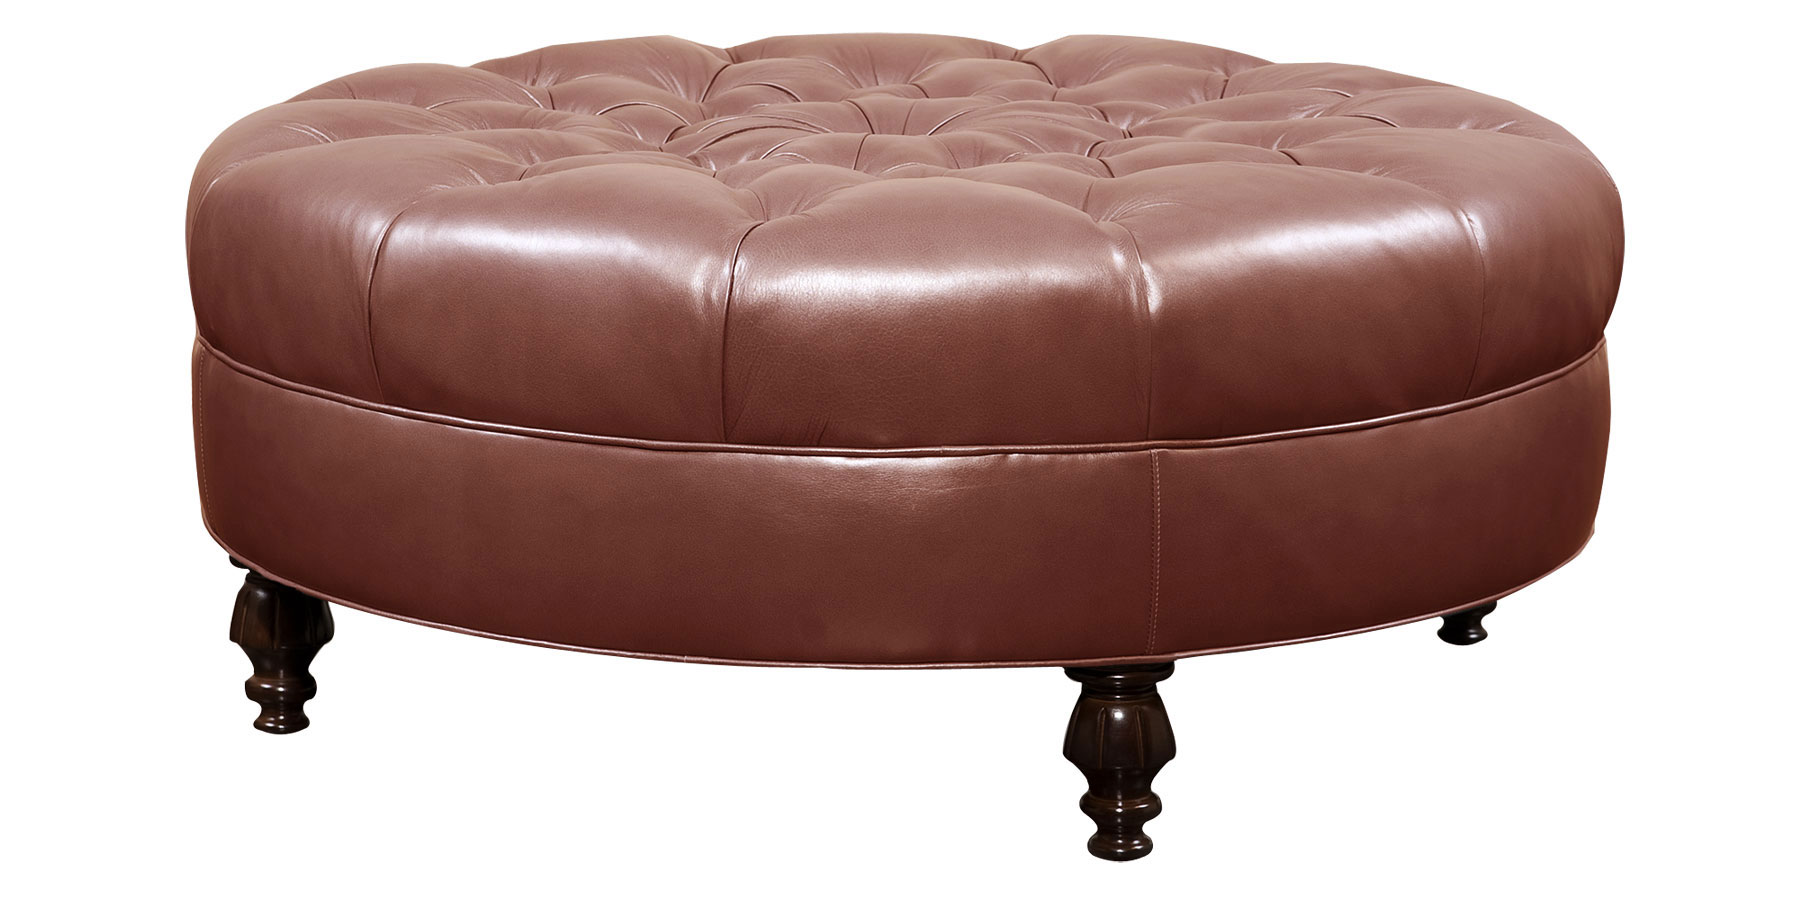 Ives Designer Style Leather Large Round Tufted Ottoman Round Fabric Ottoman Coffee Table Leather Ottomans And Coffee Table Storage (View 2 of 10)